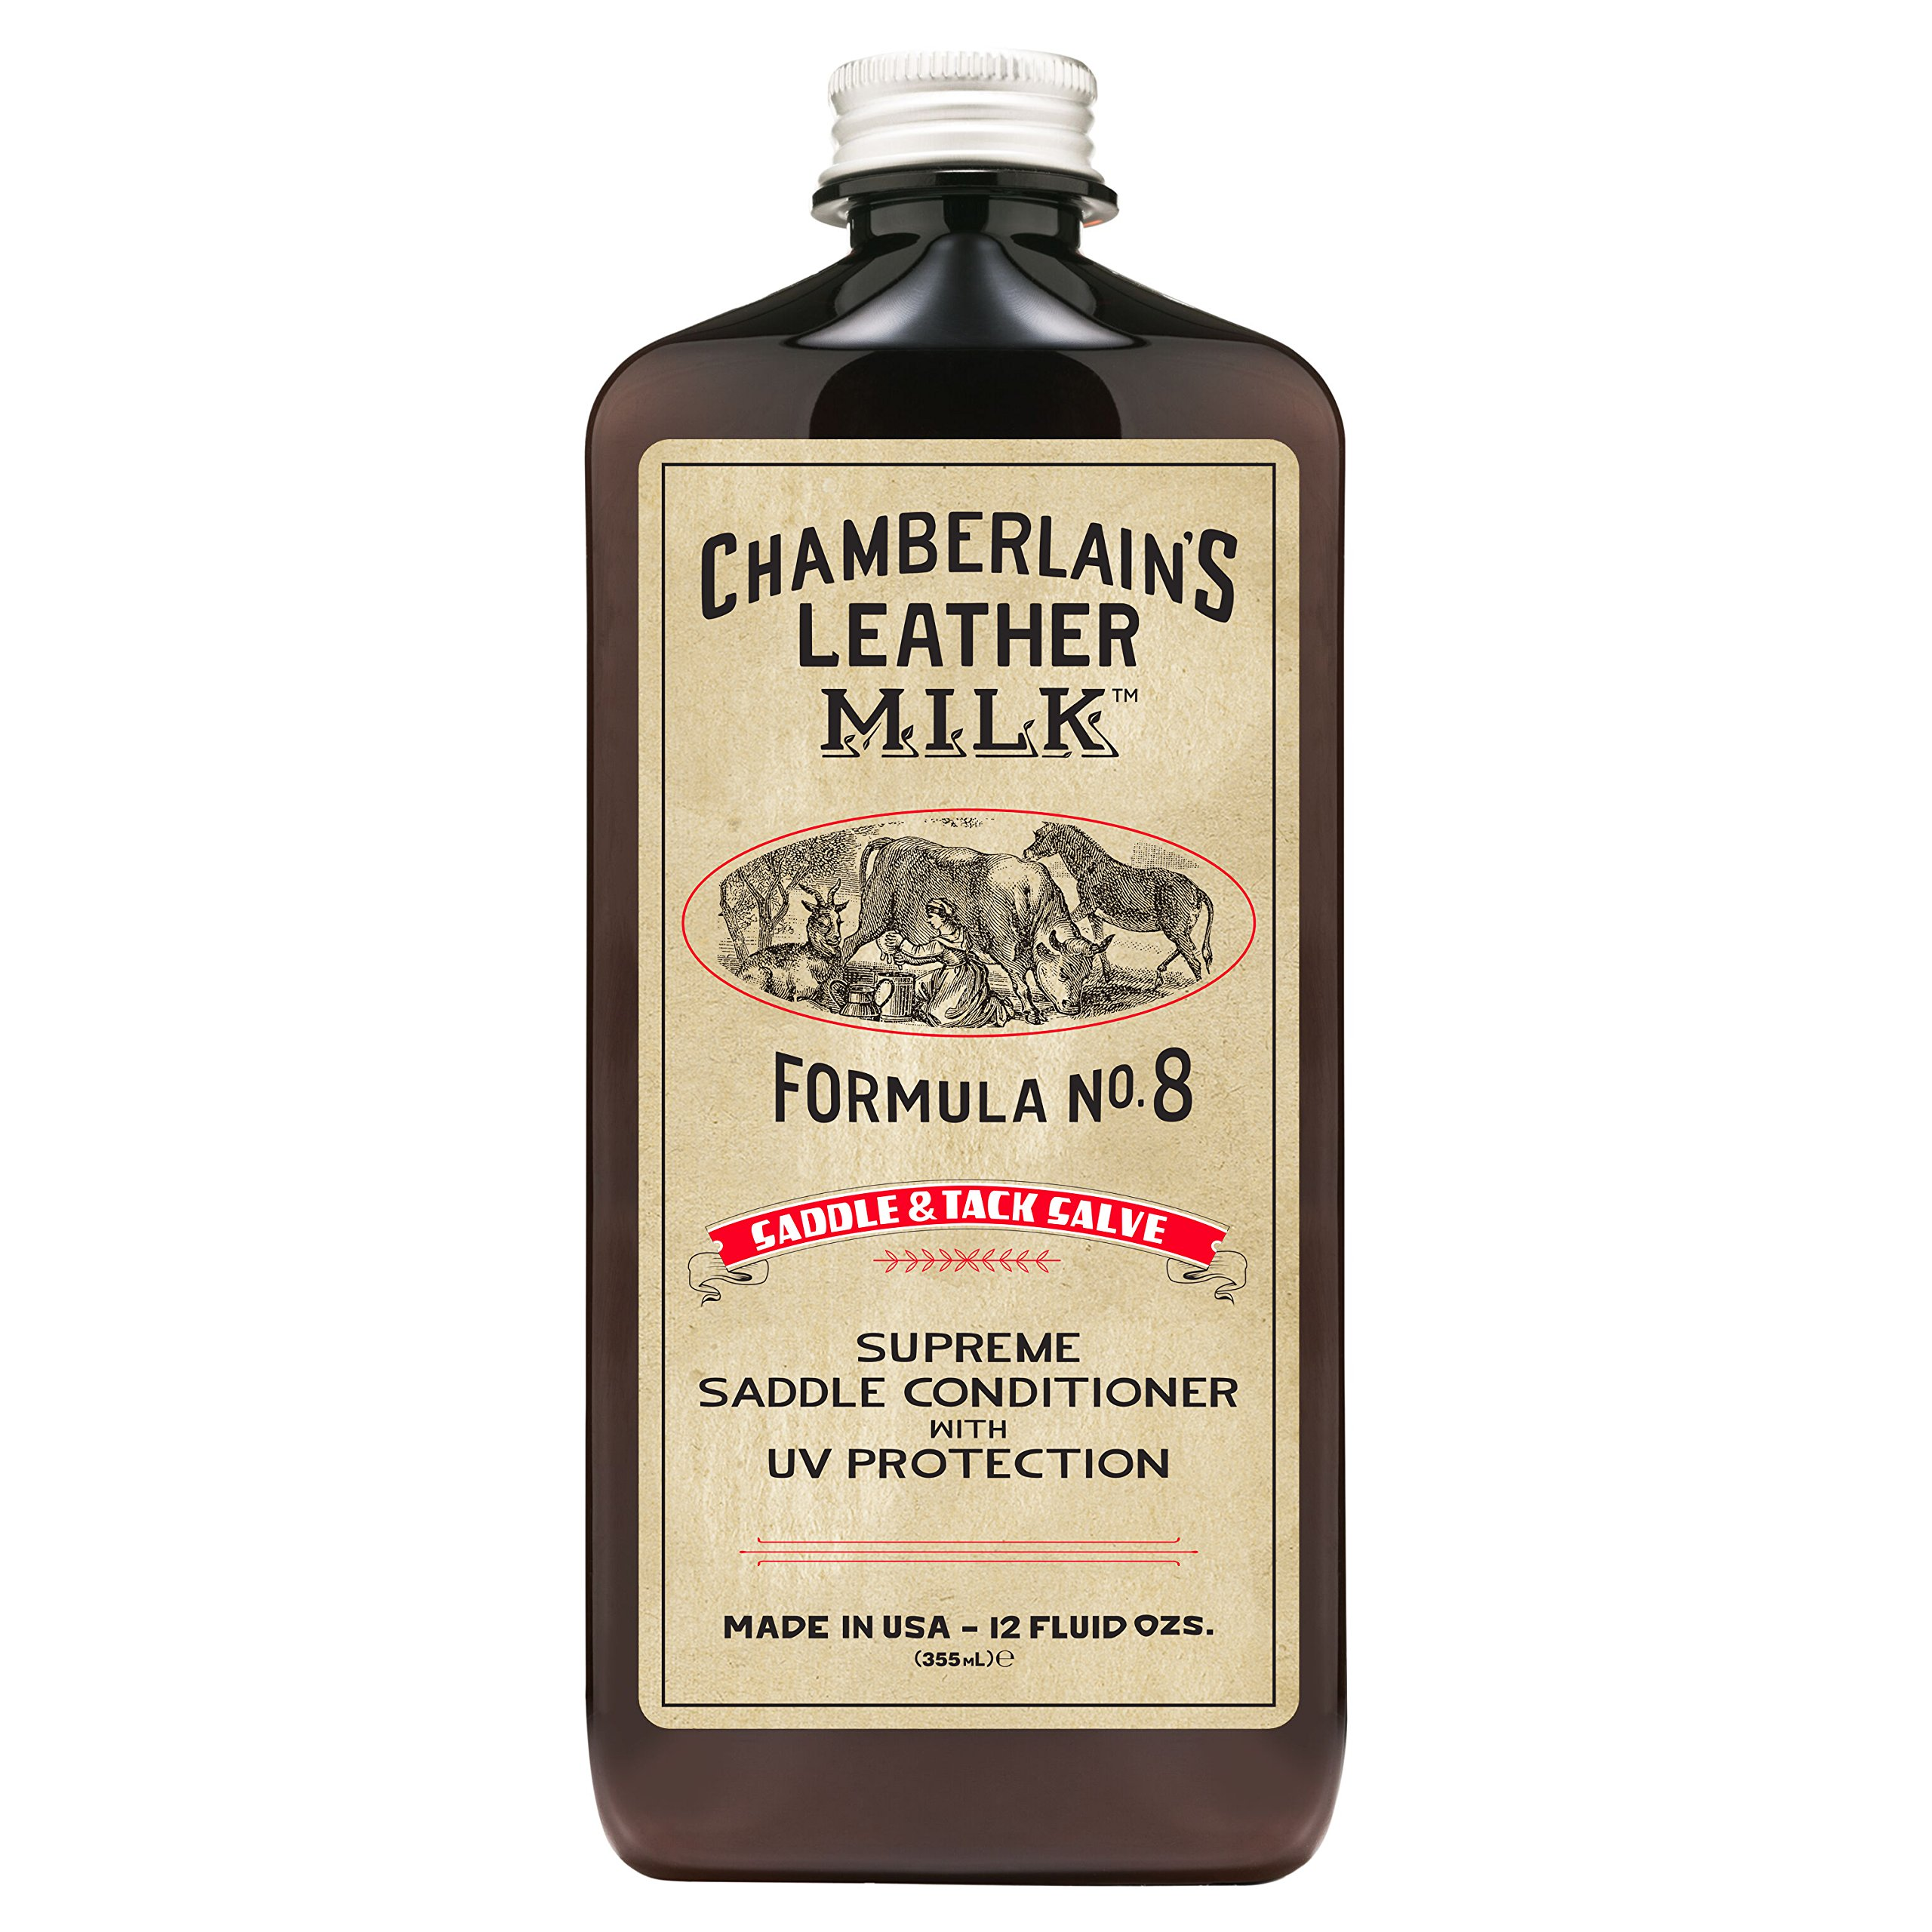 Leather Milk Saddle & Tack Leather Conditioner and Cleaner - Saddle Conditioner No. 8 - All-Natural, Non-Toxic Conditioner w/ UV Protection. Dye and Scent Free. Made in USA. Includes Conditioning Pad! by Chamberlain's Leather Milk